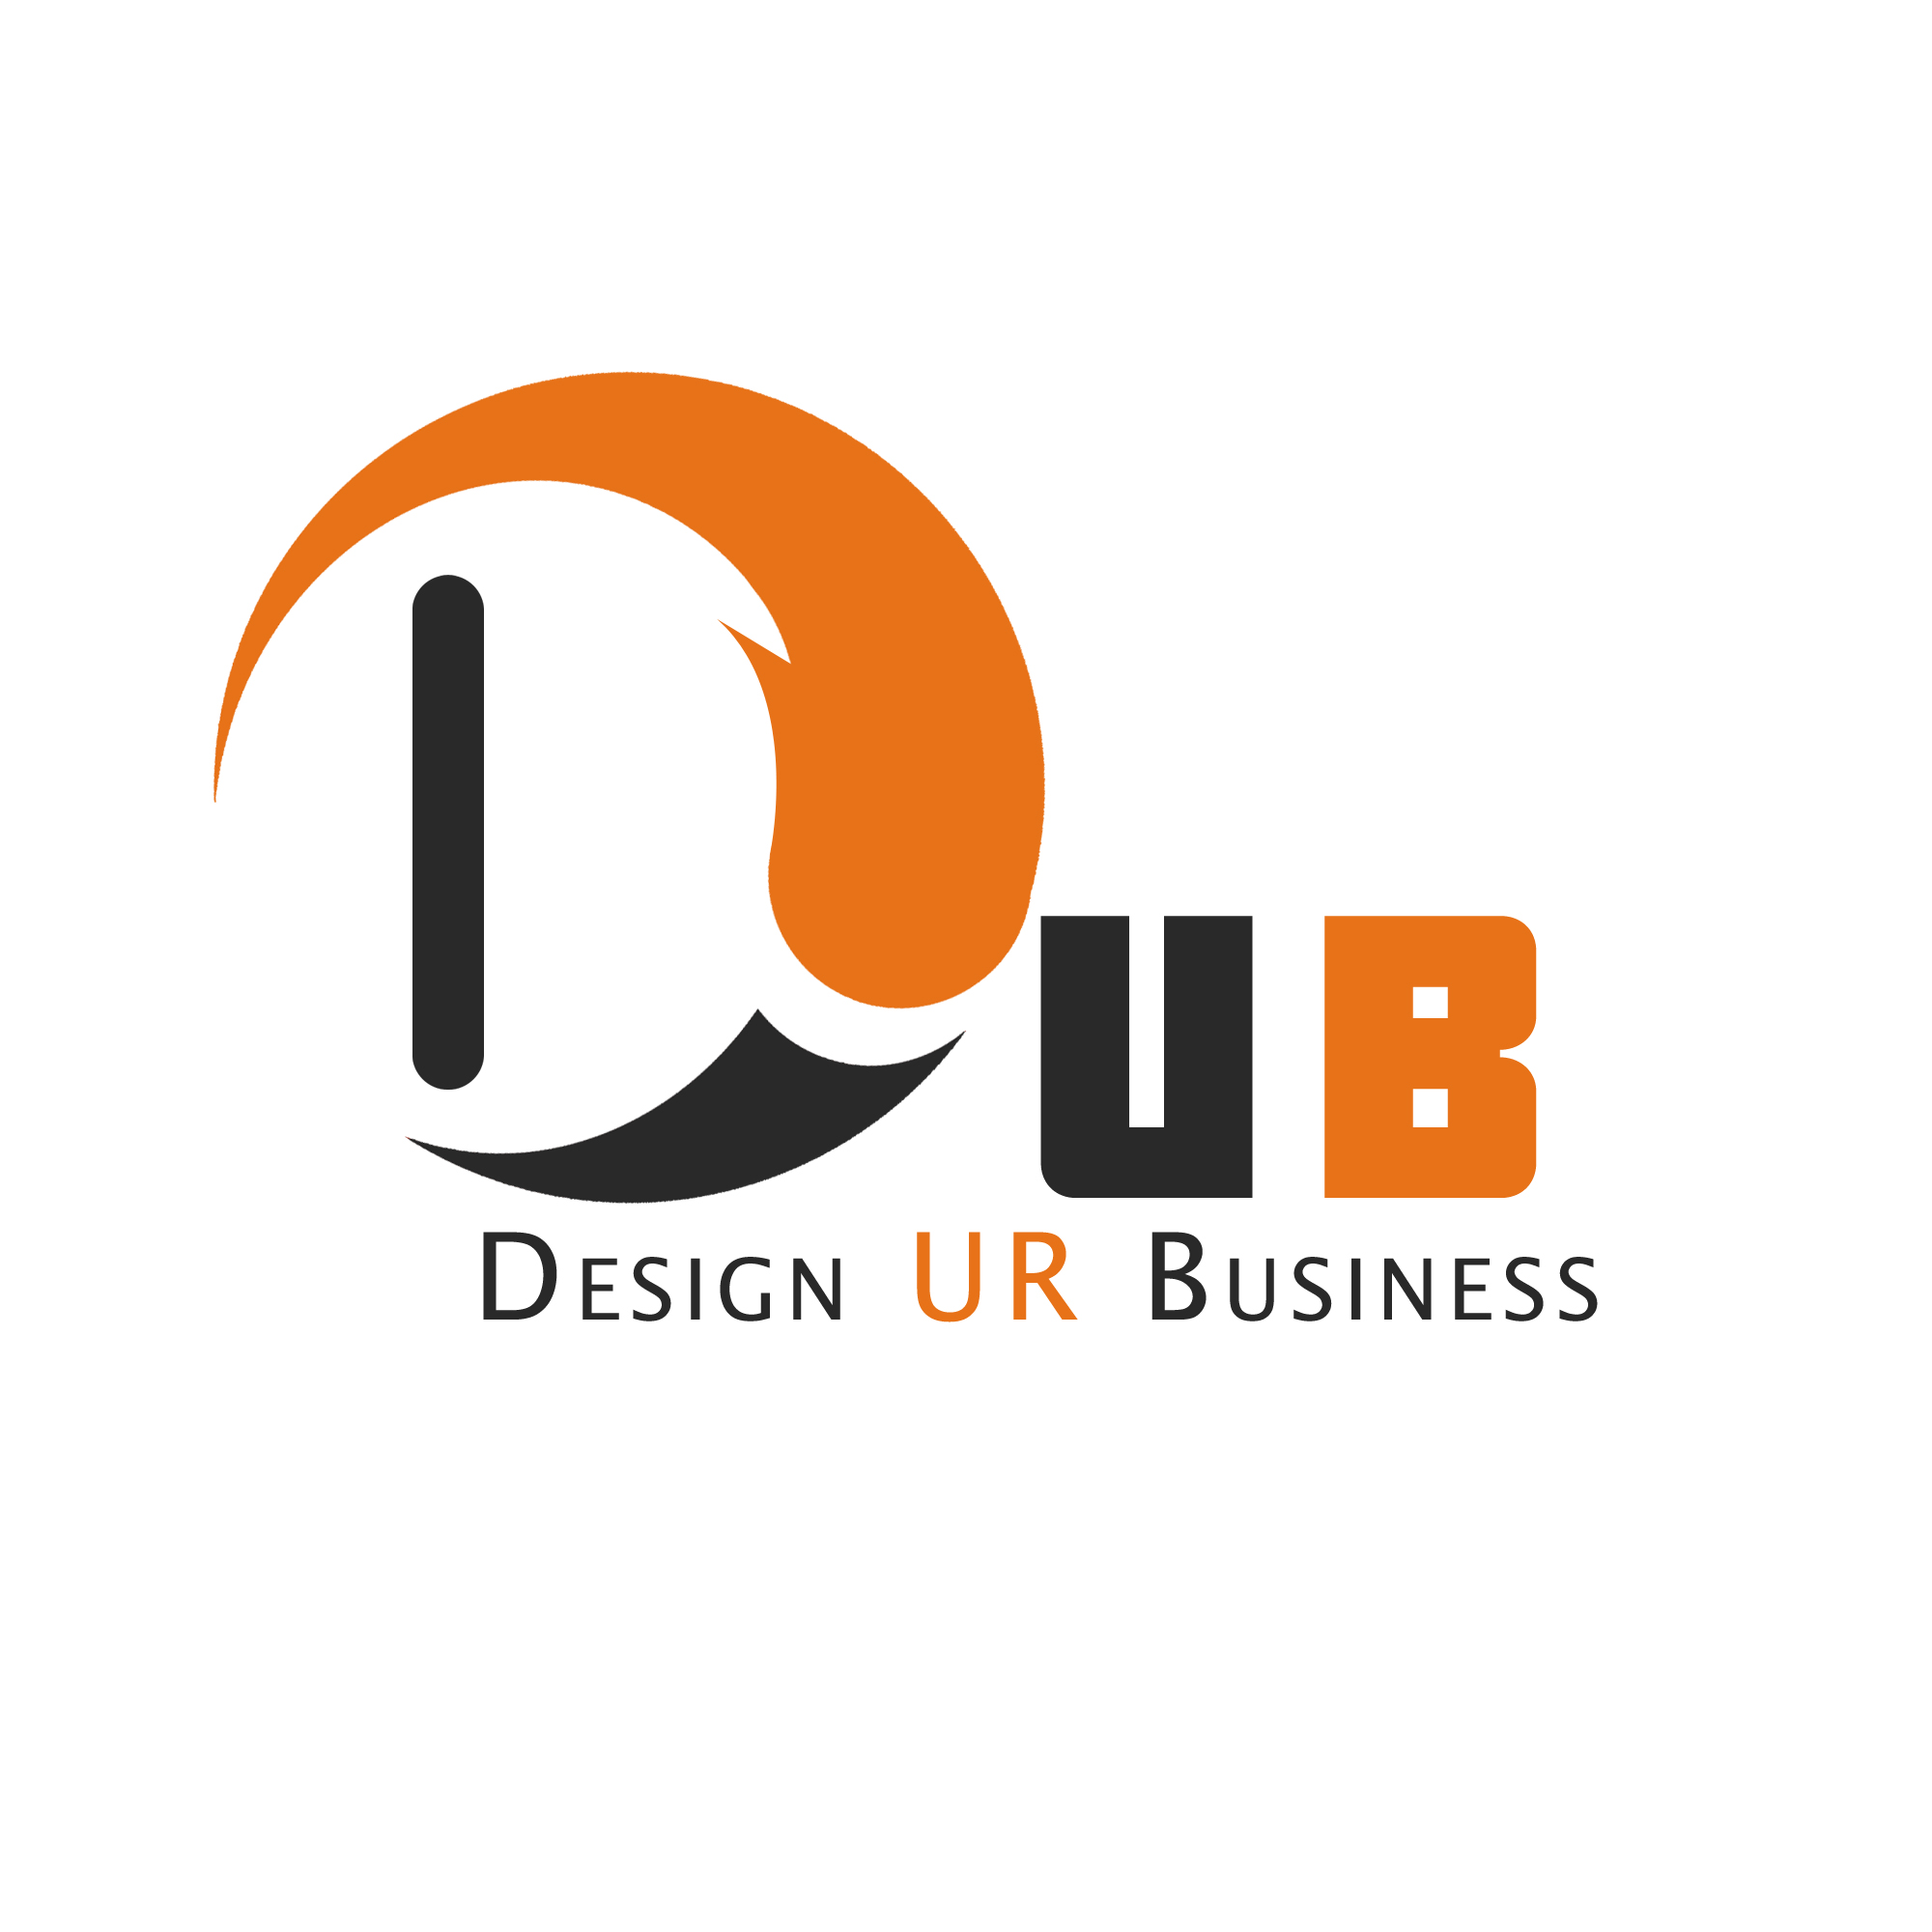 Business group logo full naked bodies for Business design consultant